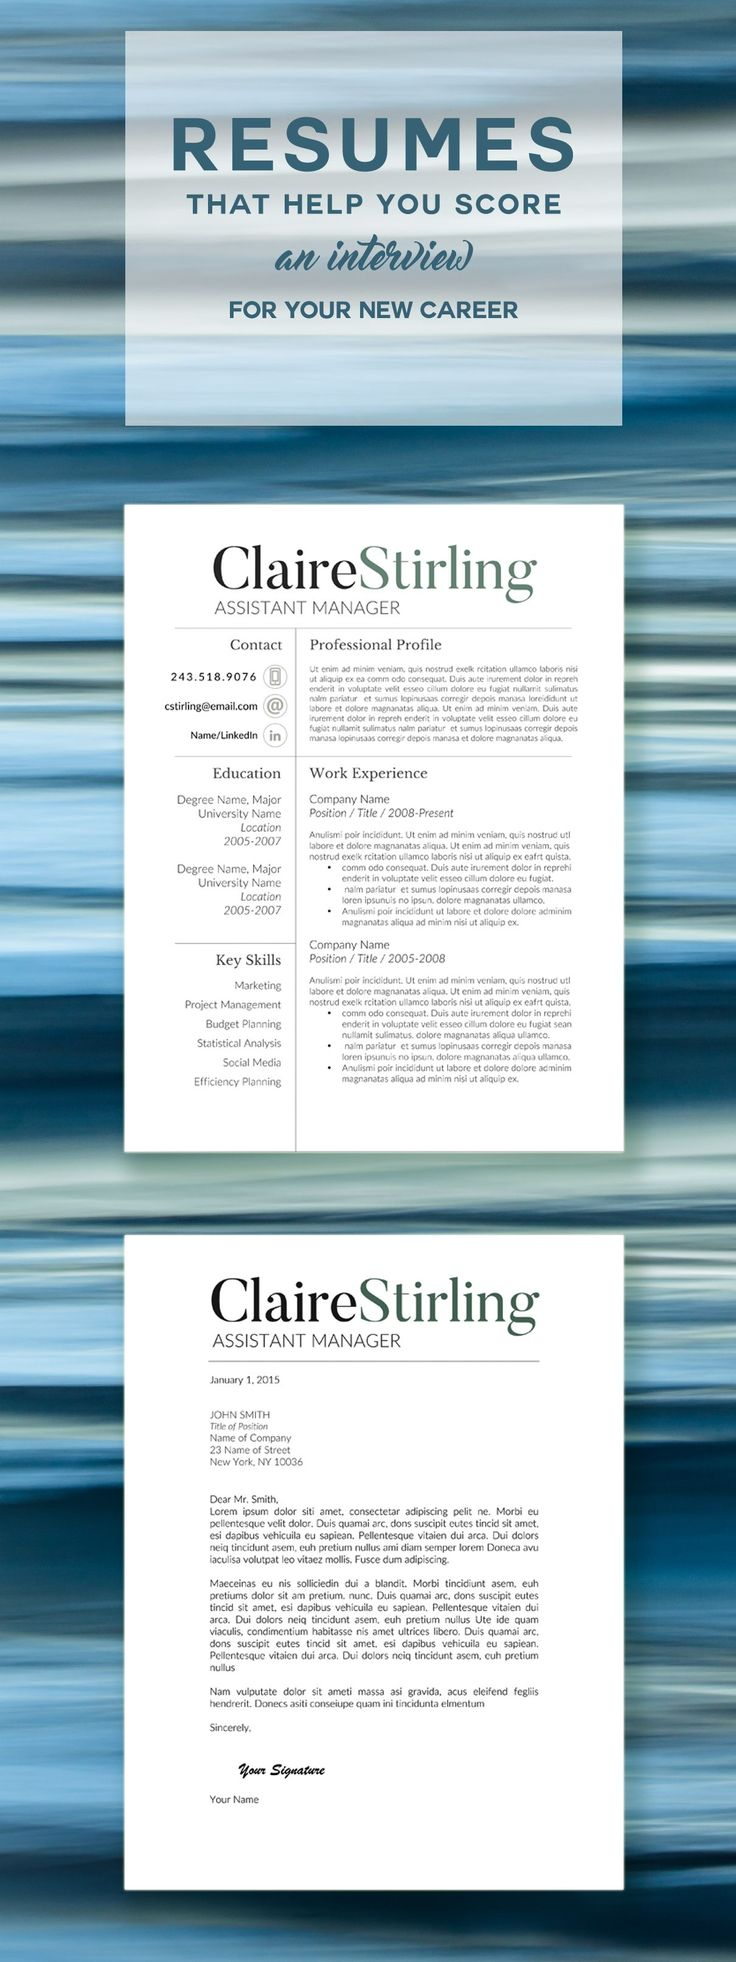 Modern resume template; for use with Microsoft Word.